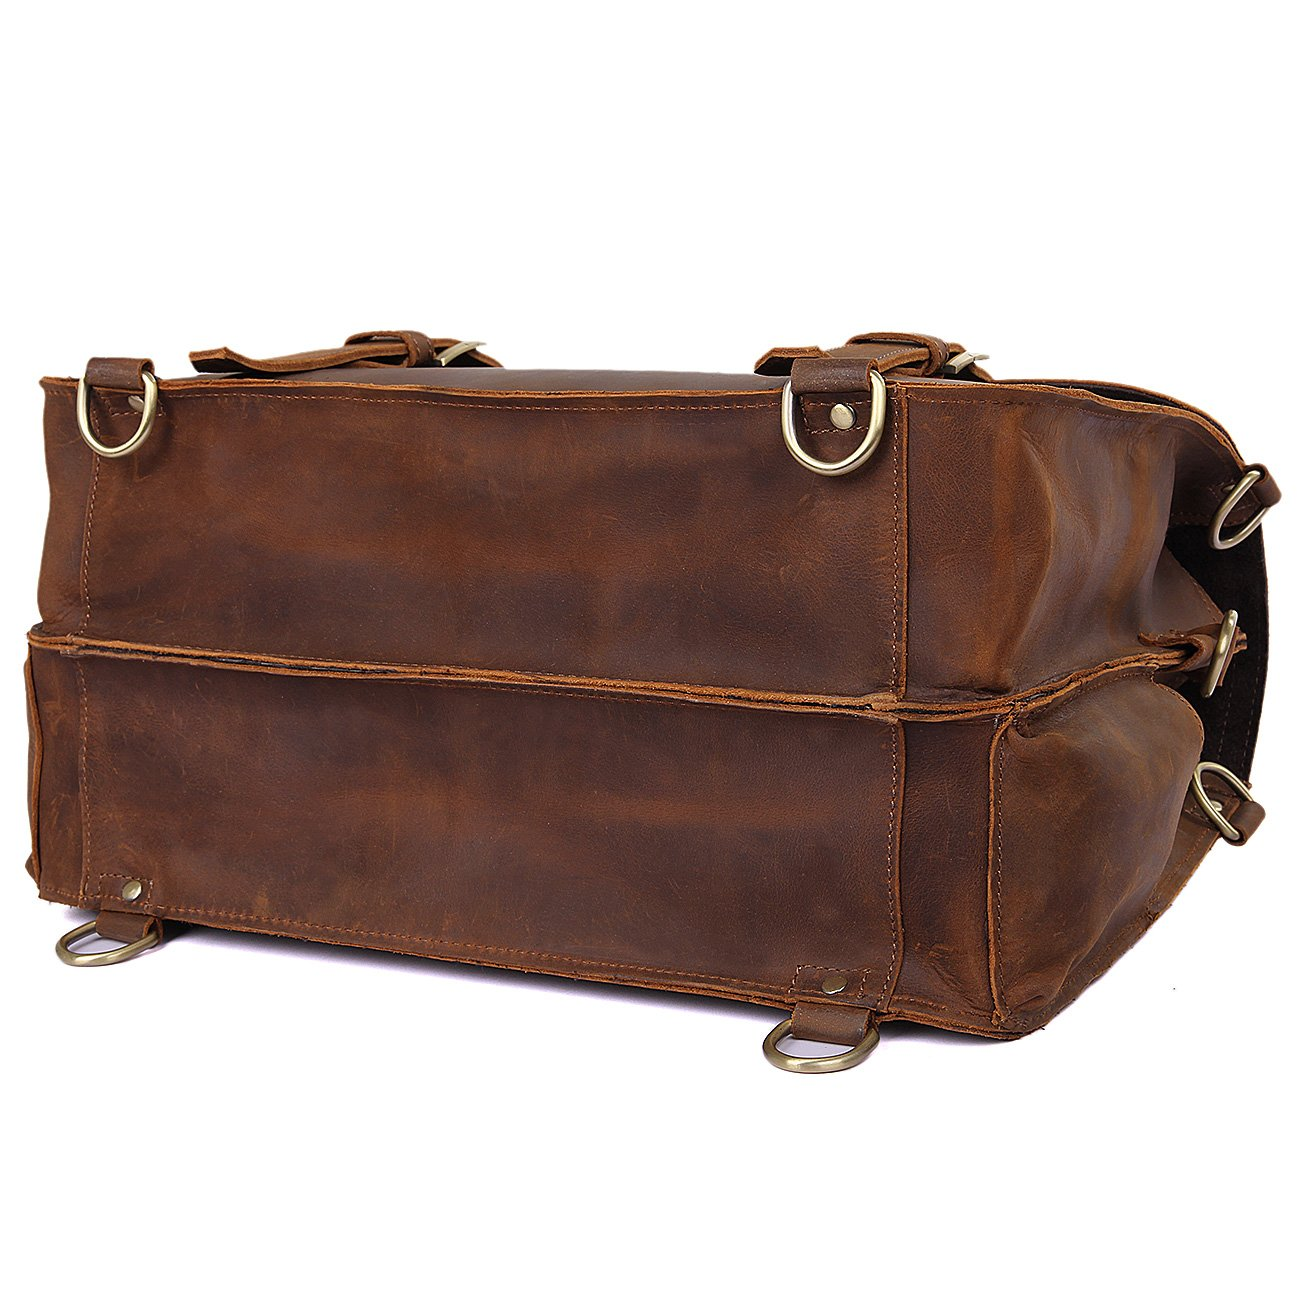 Texbo Men's Thick Cowhide Leather Messenger Bag, 16.5'' Laptop Briefcase by Texbo (Image #5)